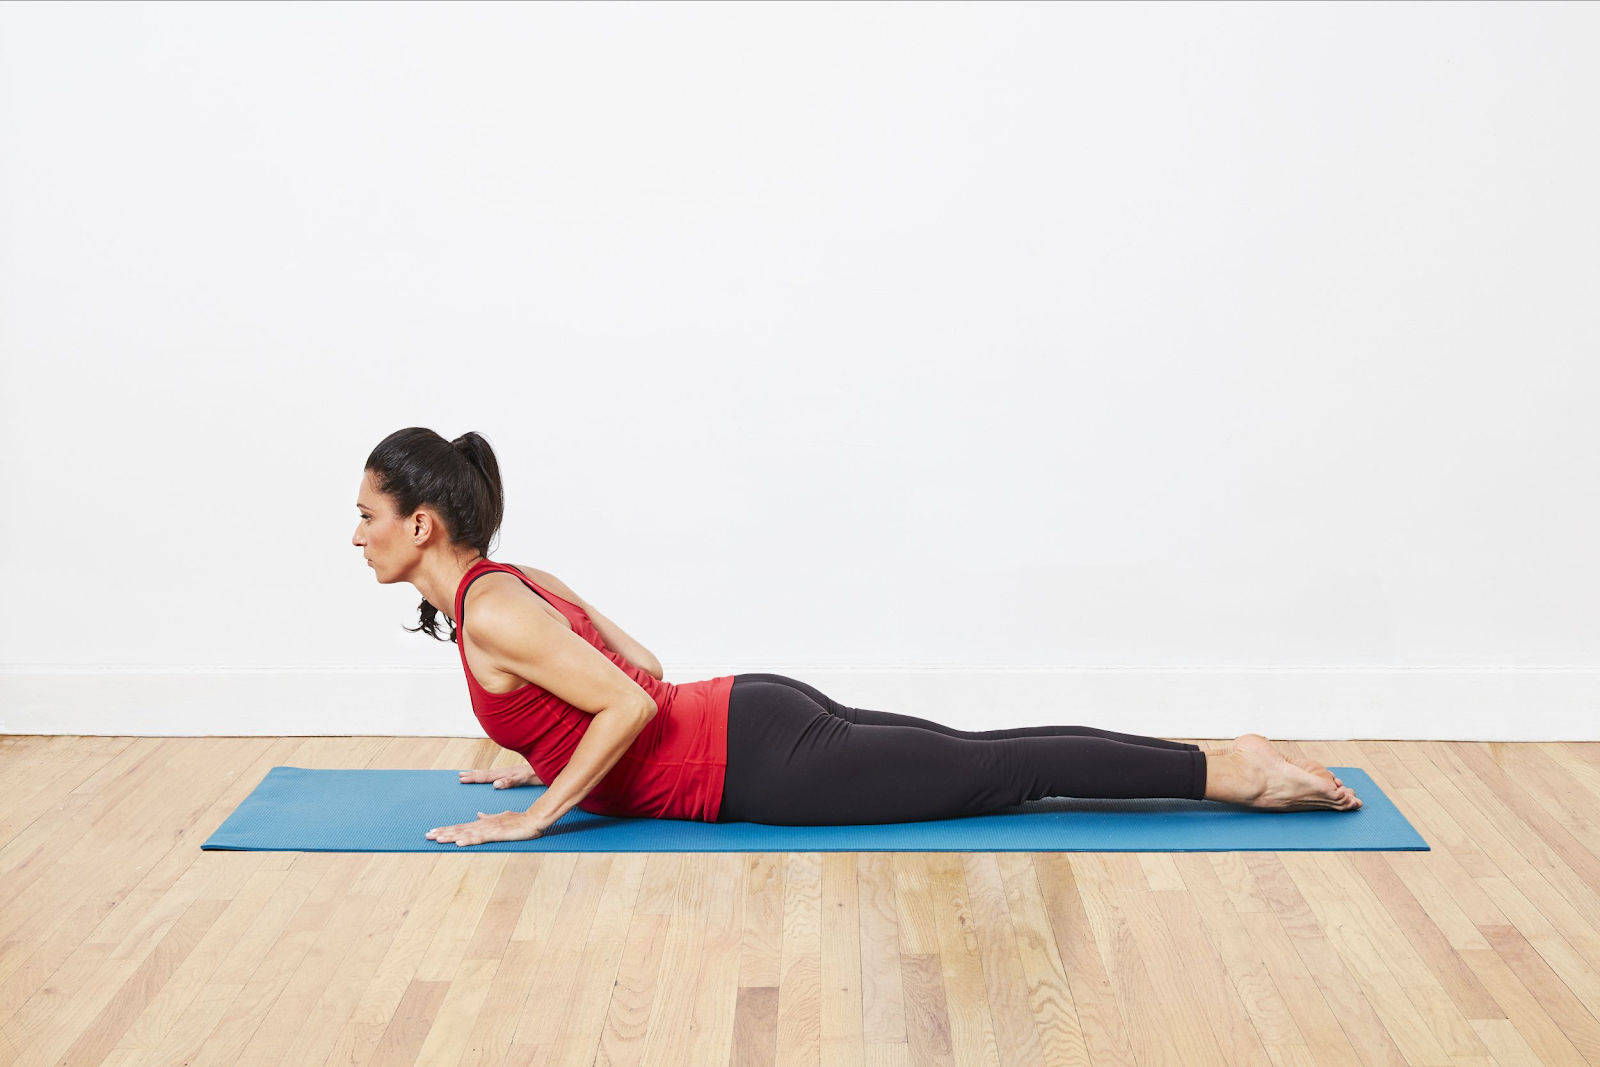 A woman on a yoga mat stretching her back